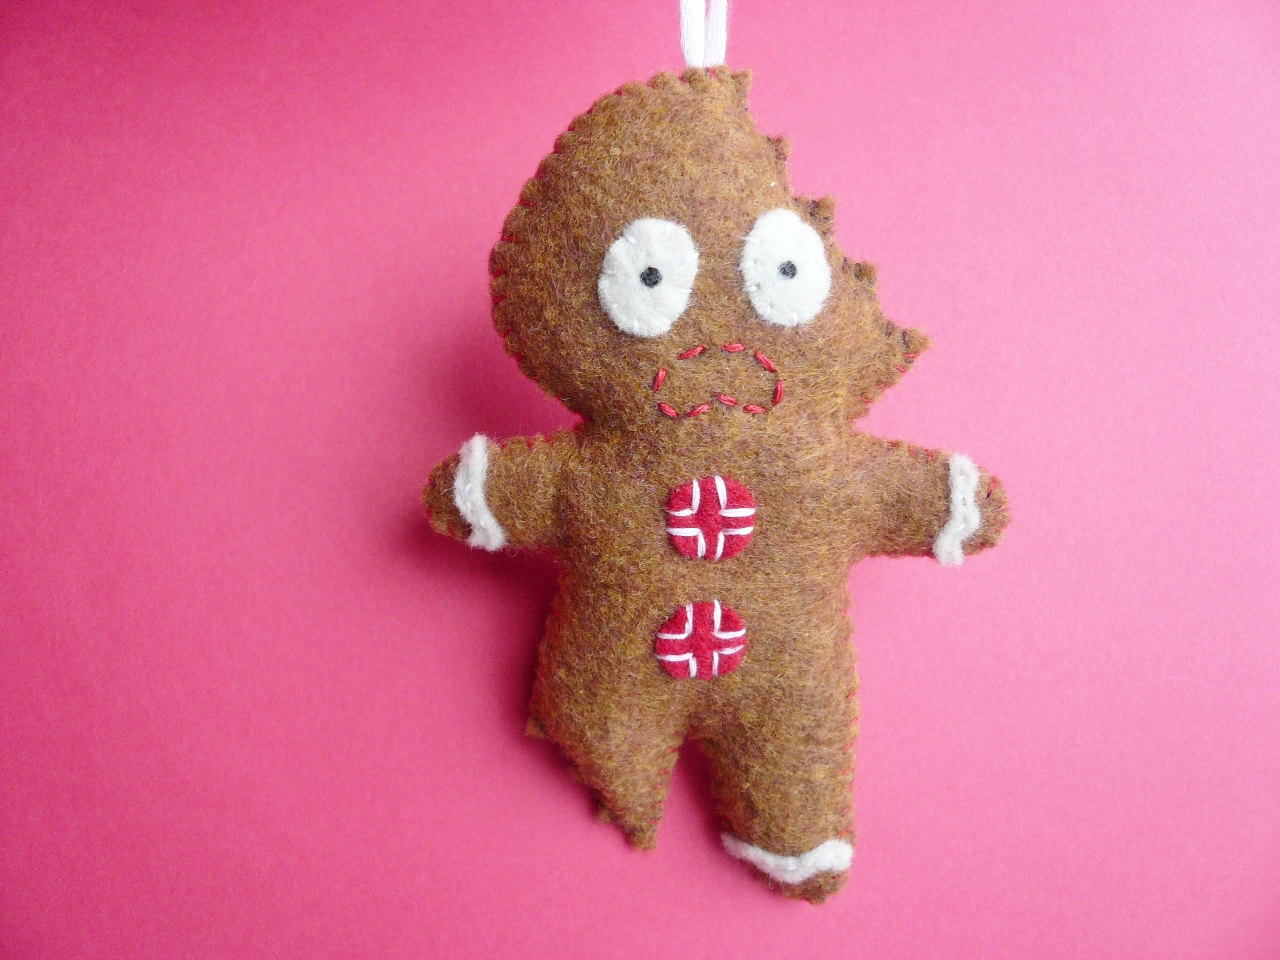 Felt Christmas Ornament Terrifed Gingerbread Man On Luulla